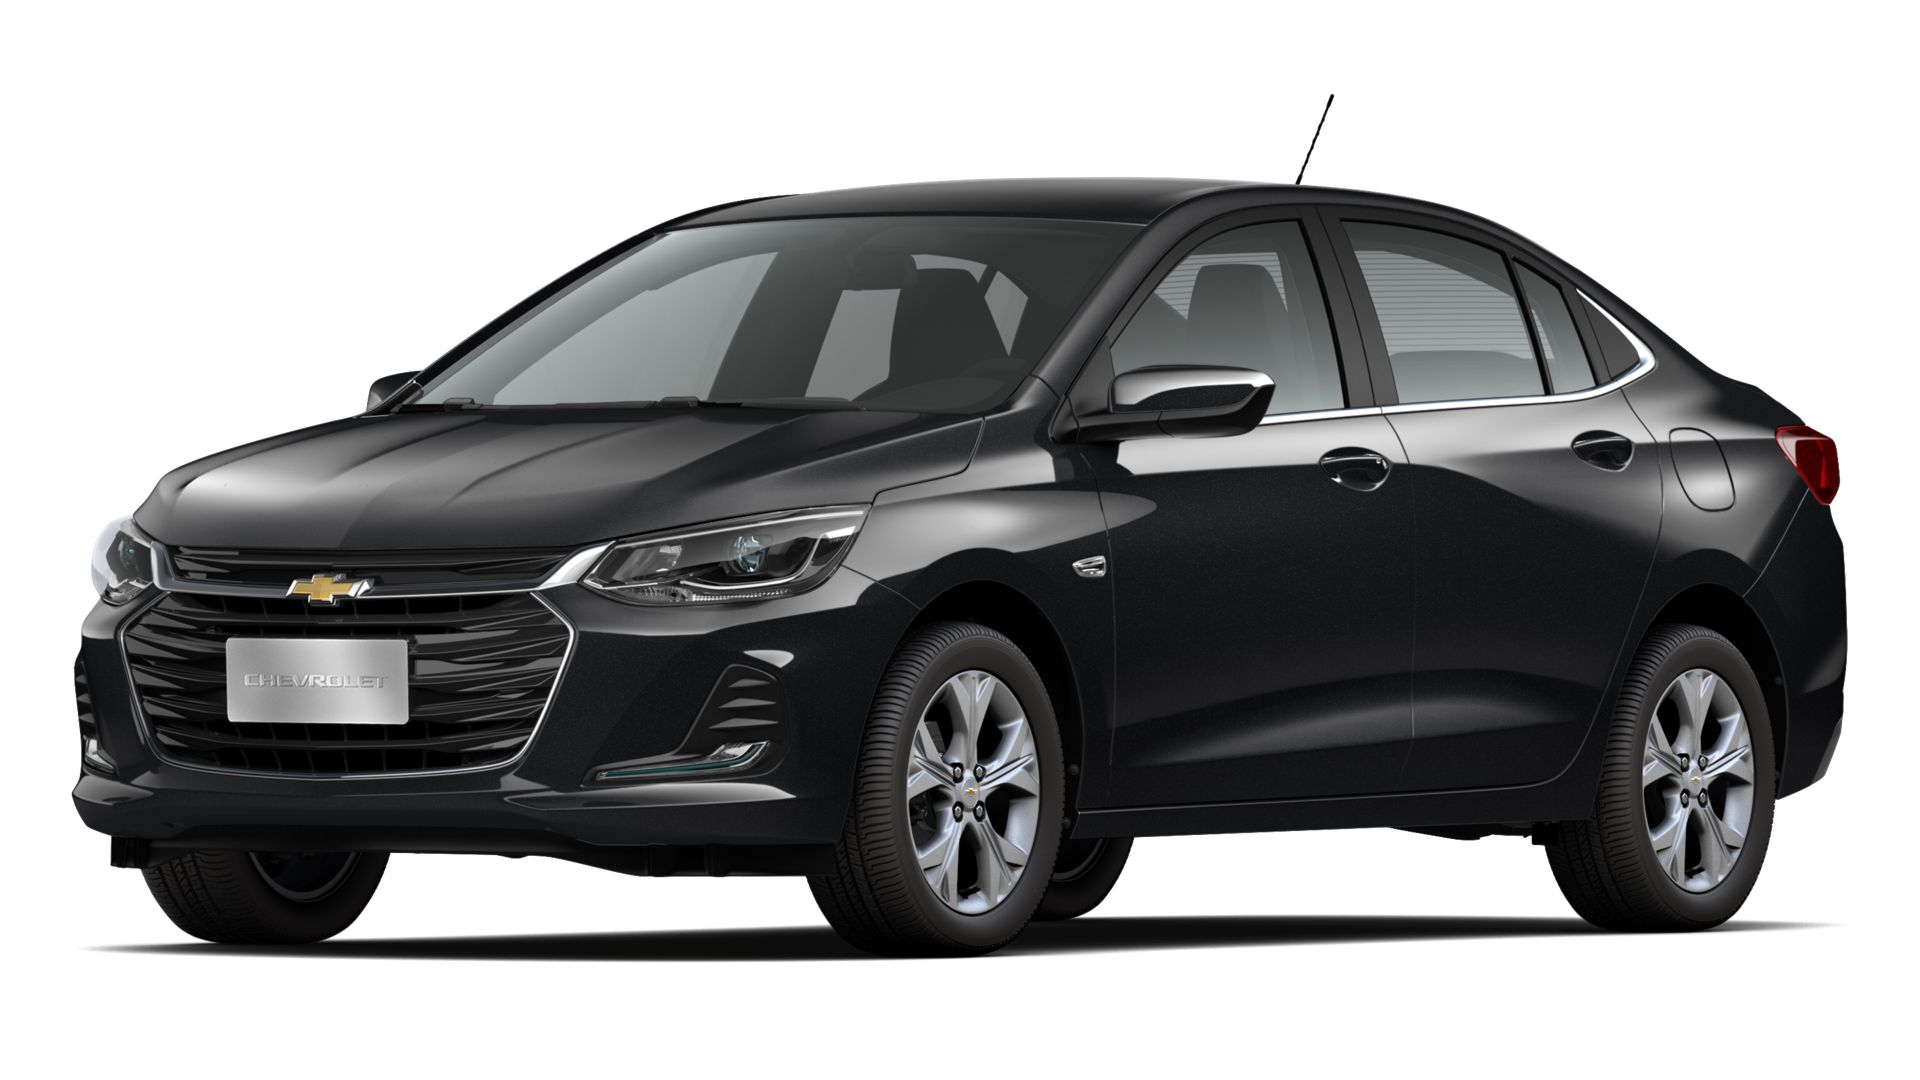 CHEVROLET ONIX PLUS PREMIER 1.0 TURBO 2020